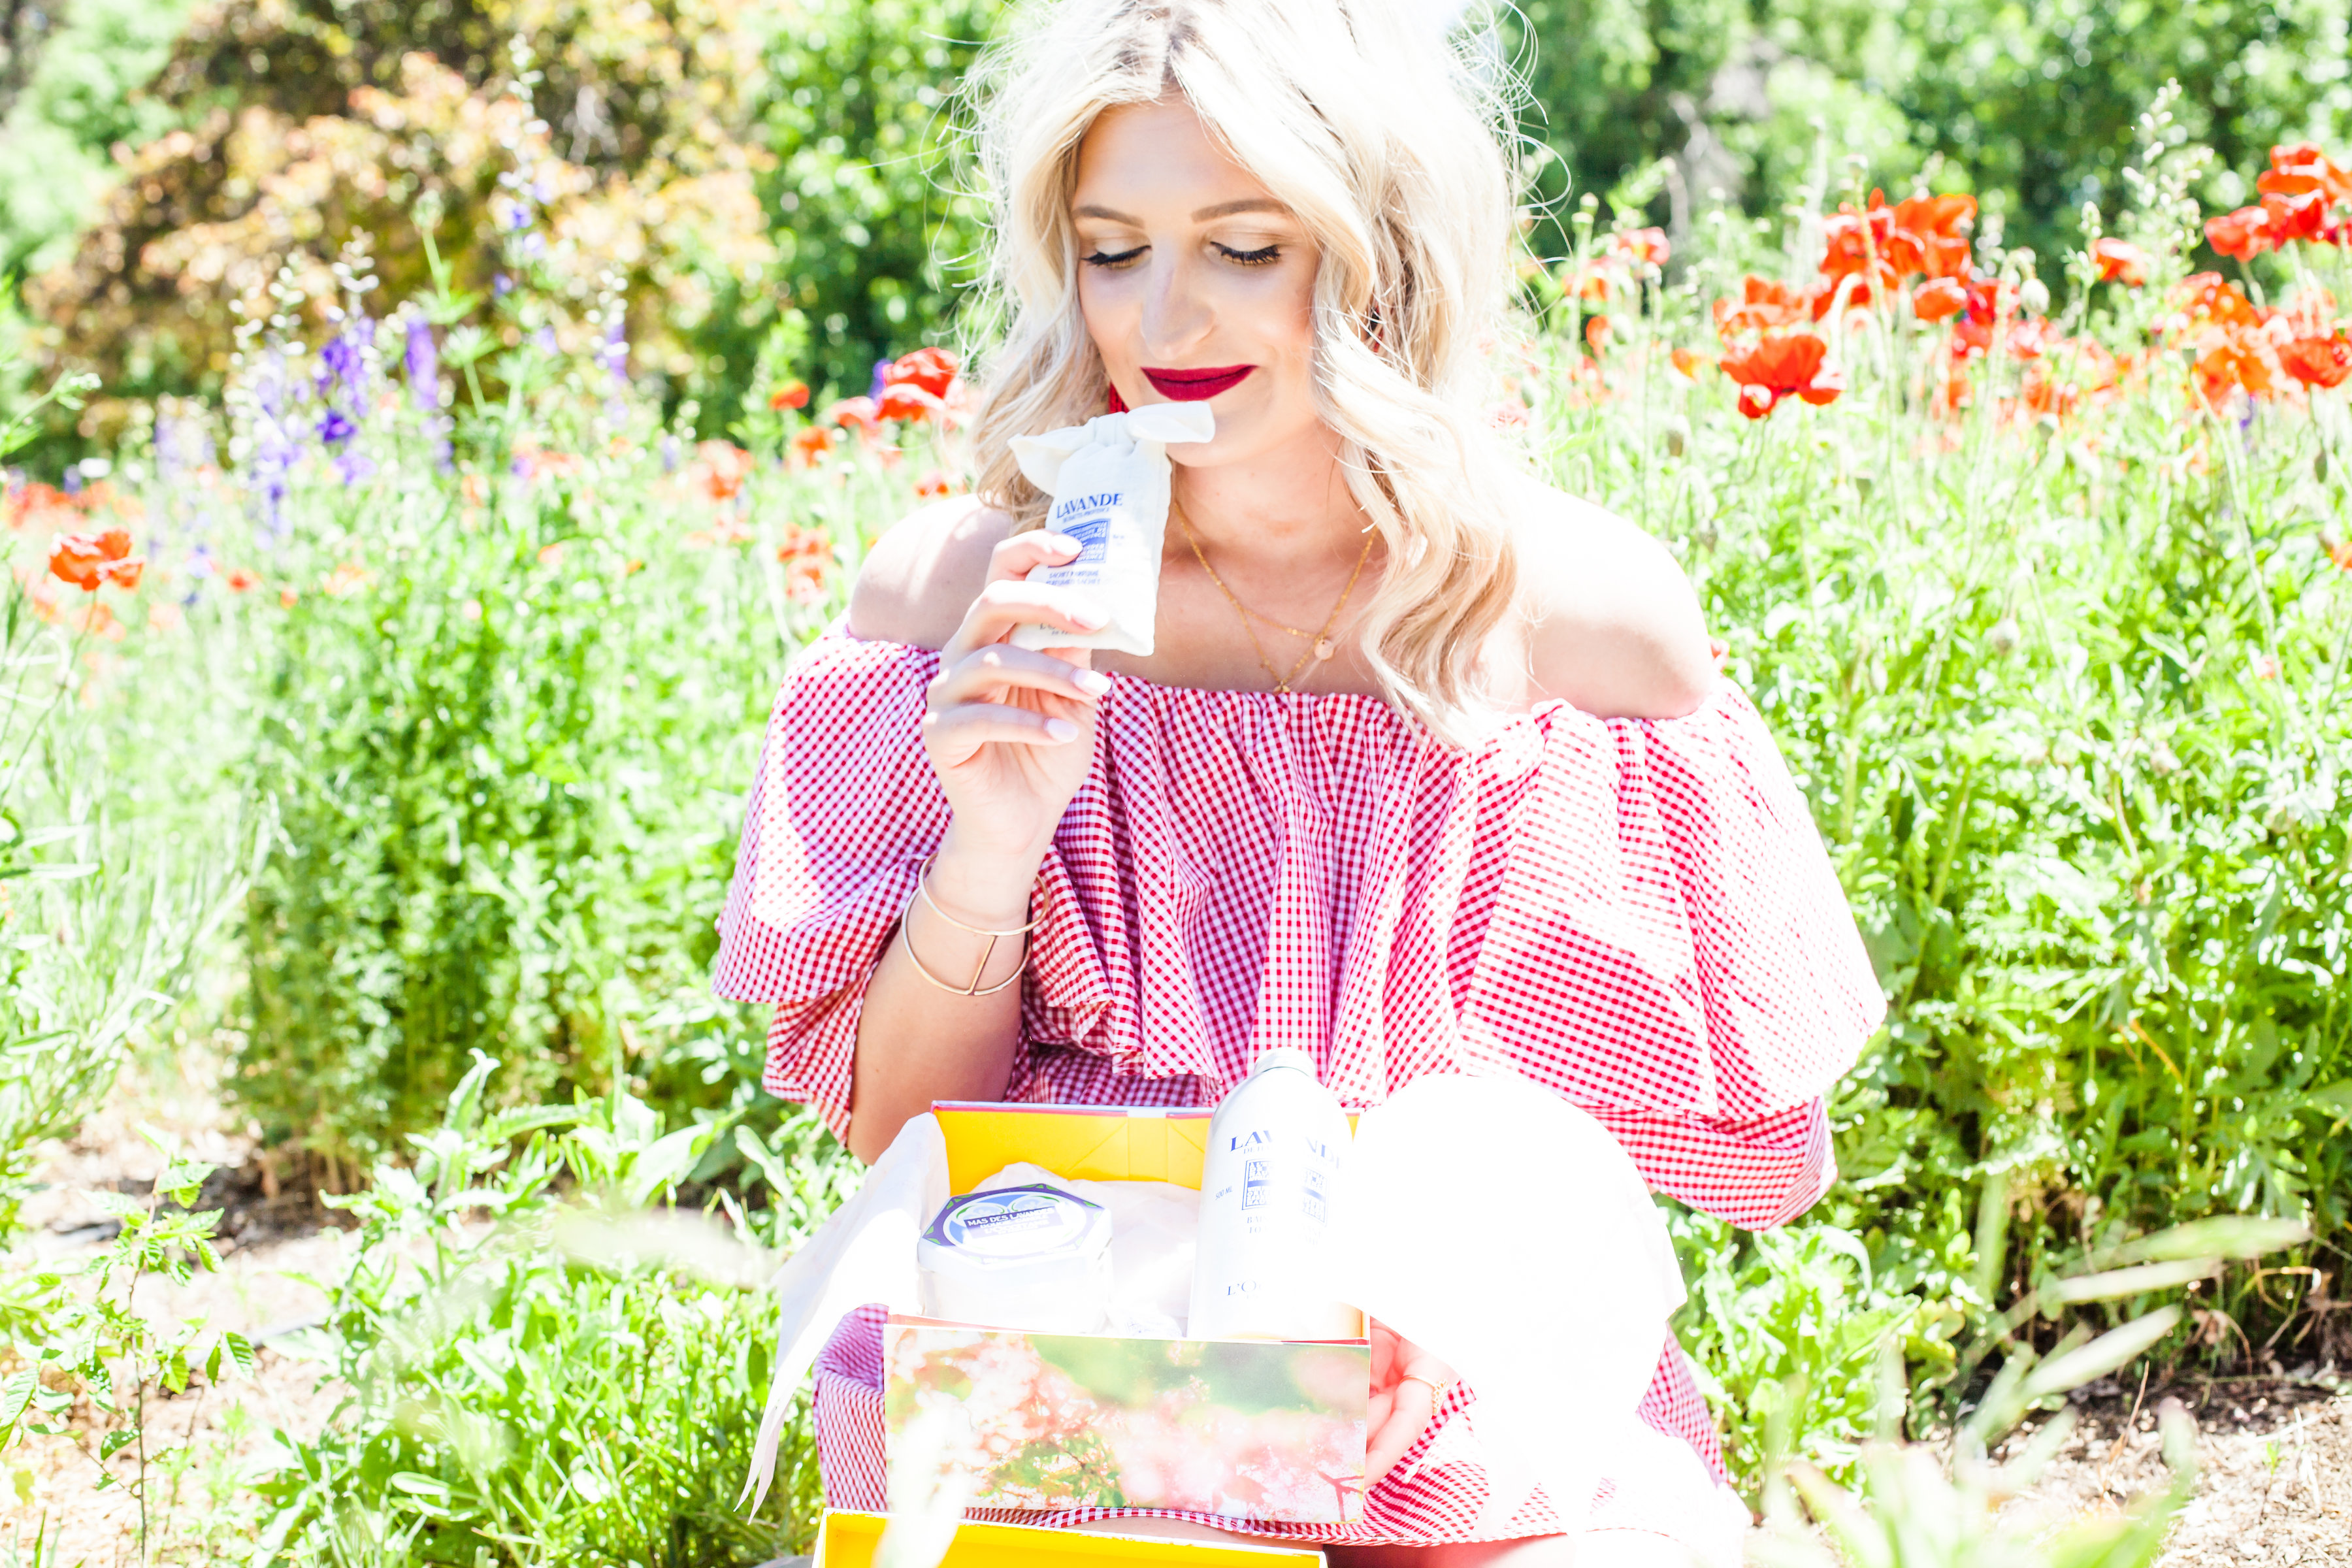 Mother's Day Gift Idea and 4 Beauty Tips My mom Taught me by lifestyle and fashion blogger Audrey Madison Stowe